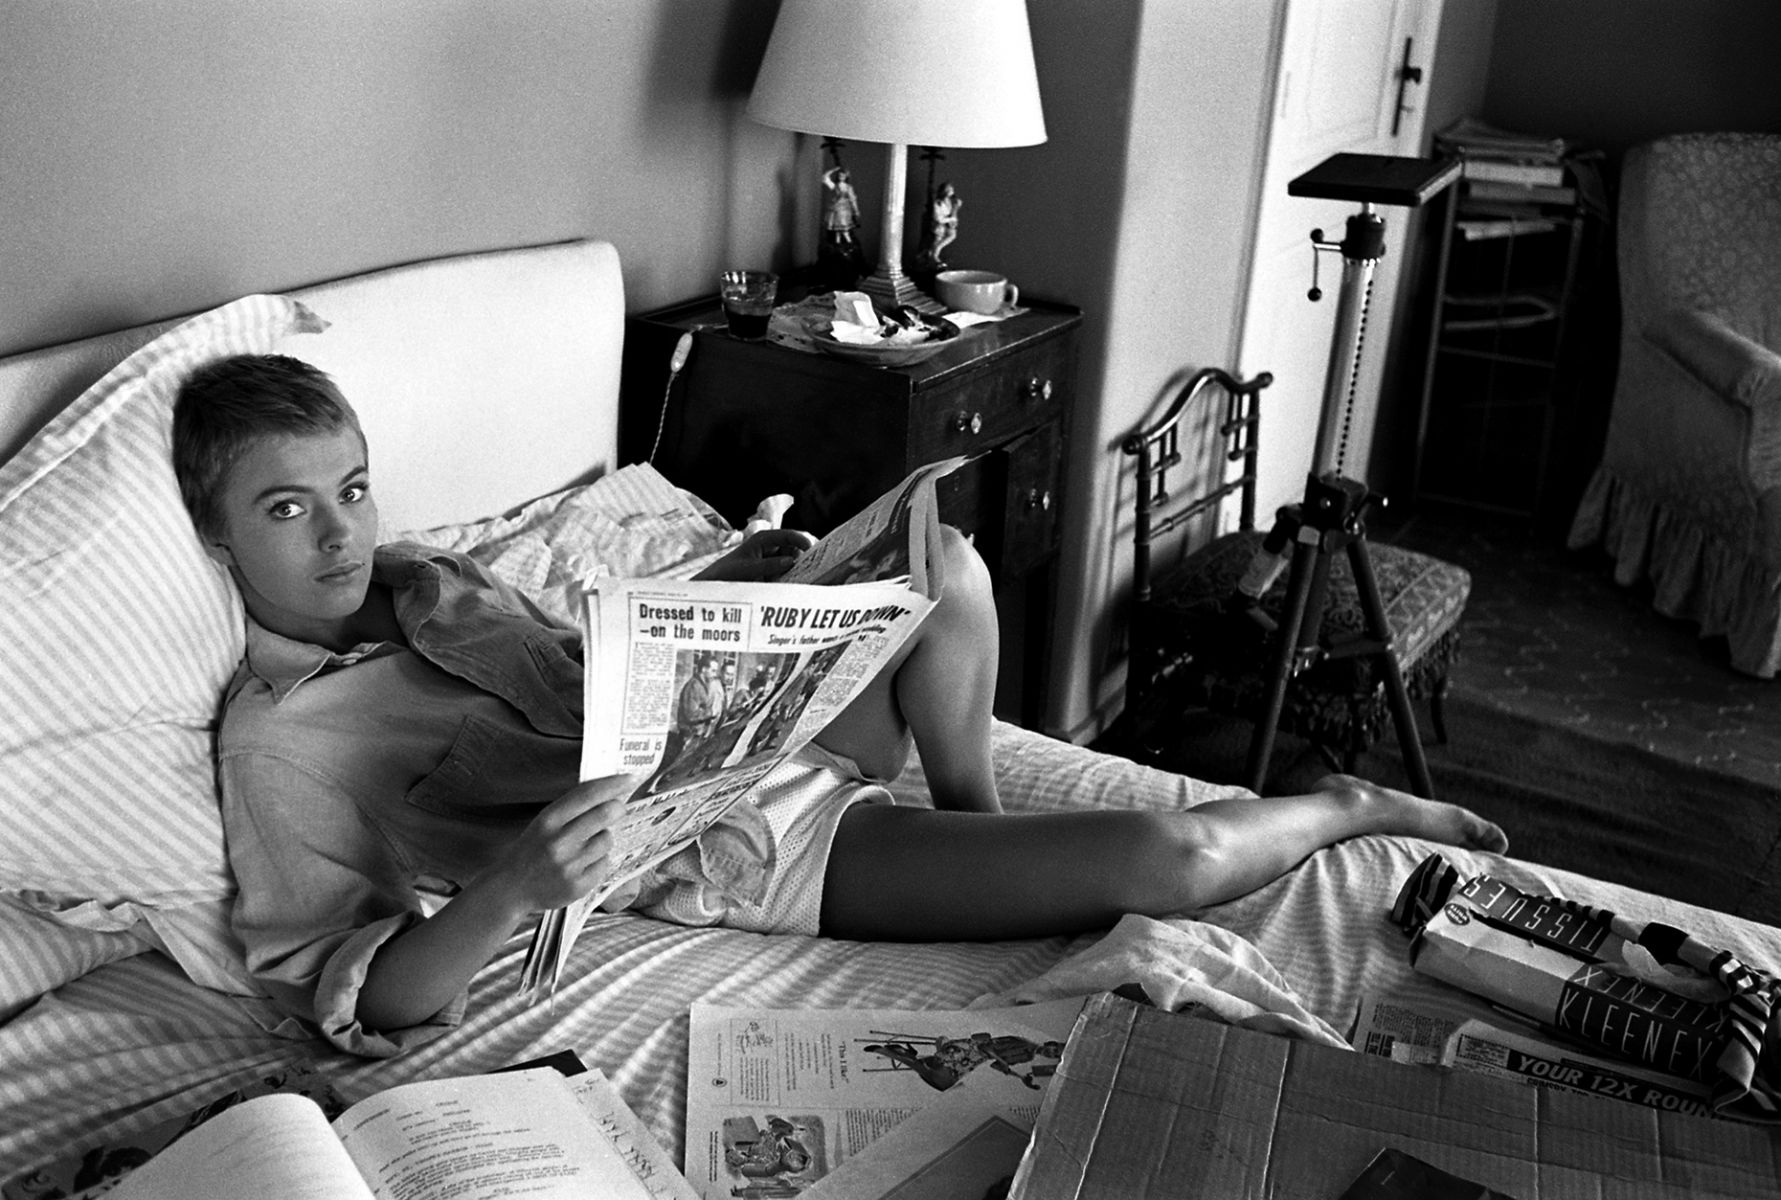 Jean Seberg reading paper in bed, during filming of Bonjour Tristesse in France, 1957.